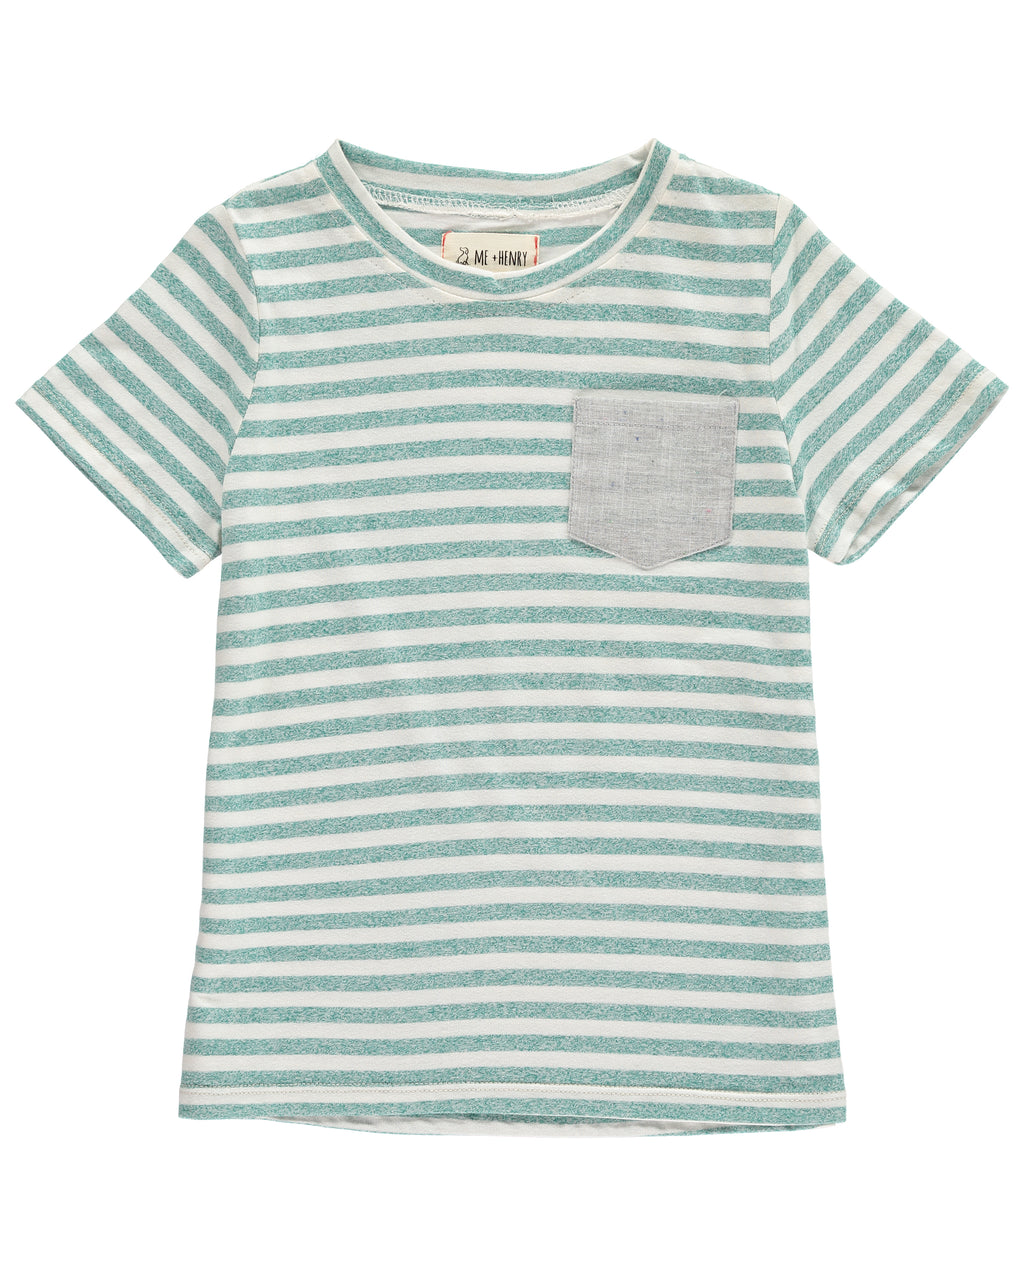 Green Striped Tee